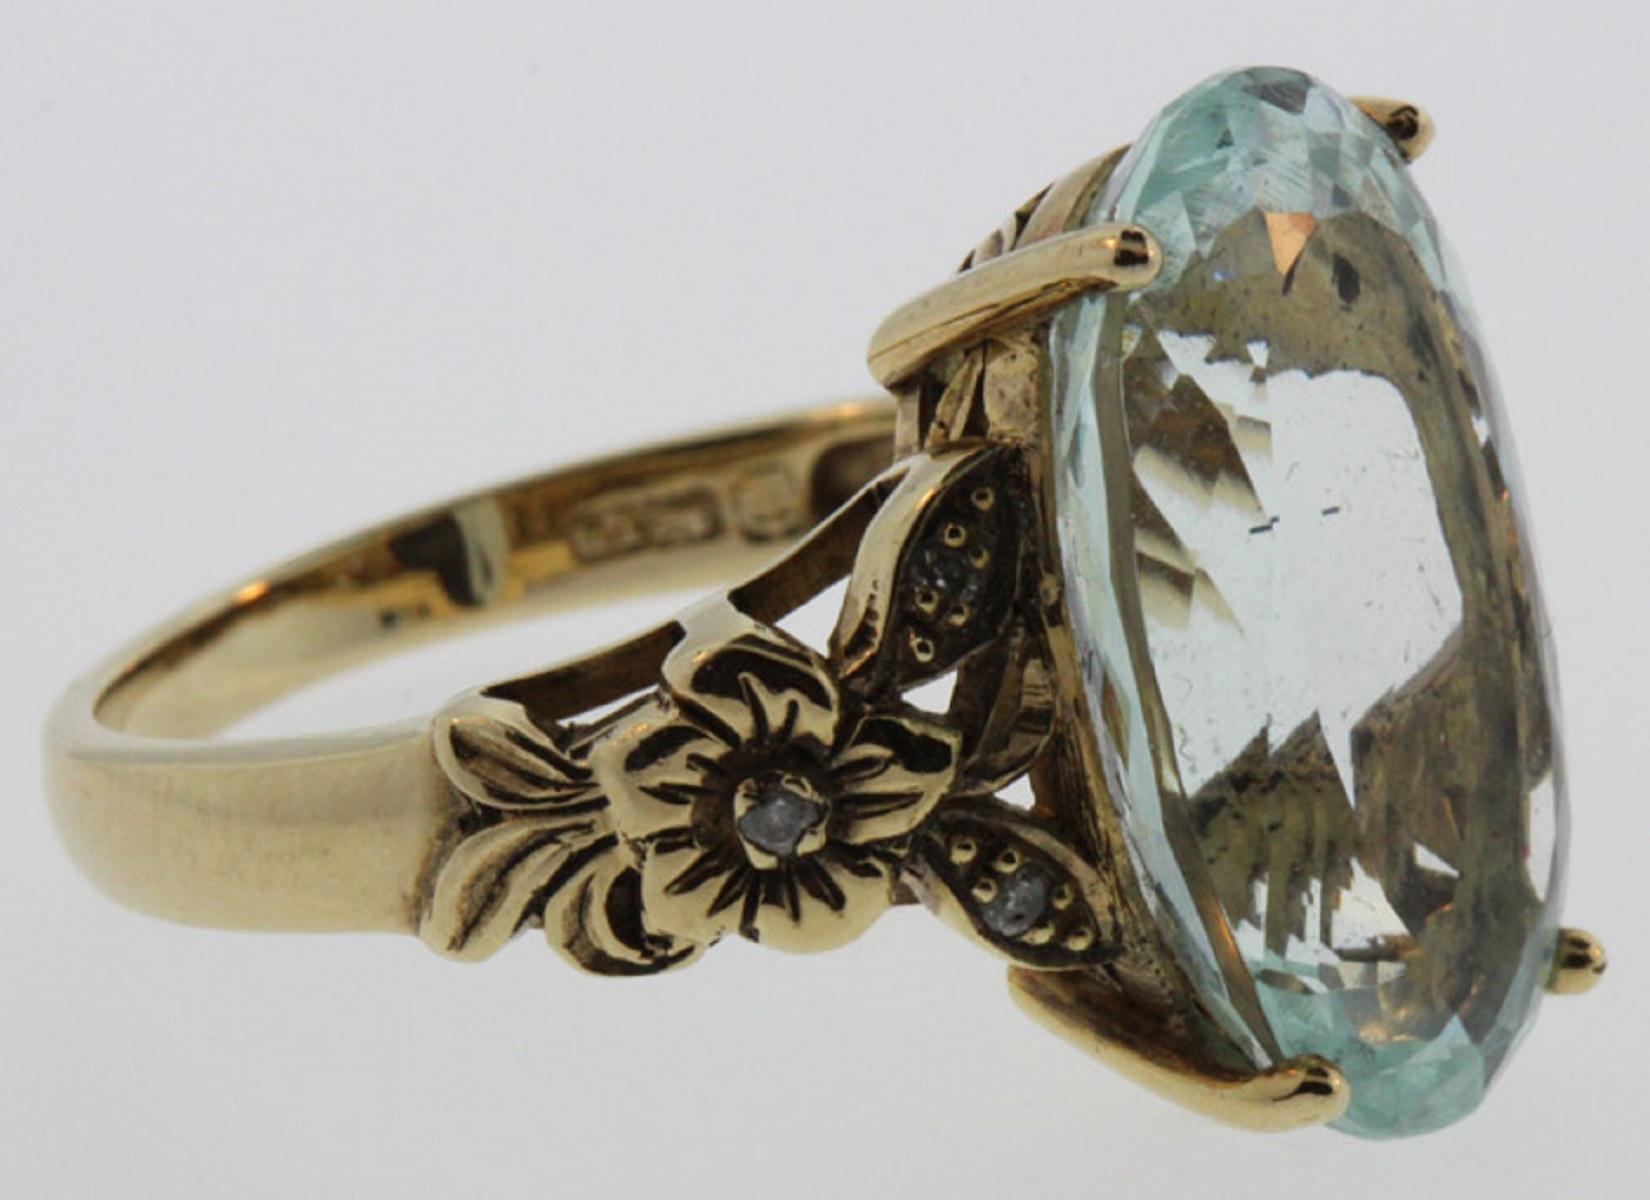 Aquamarine Ring in 9ct Gold with large elliptical centre stone